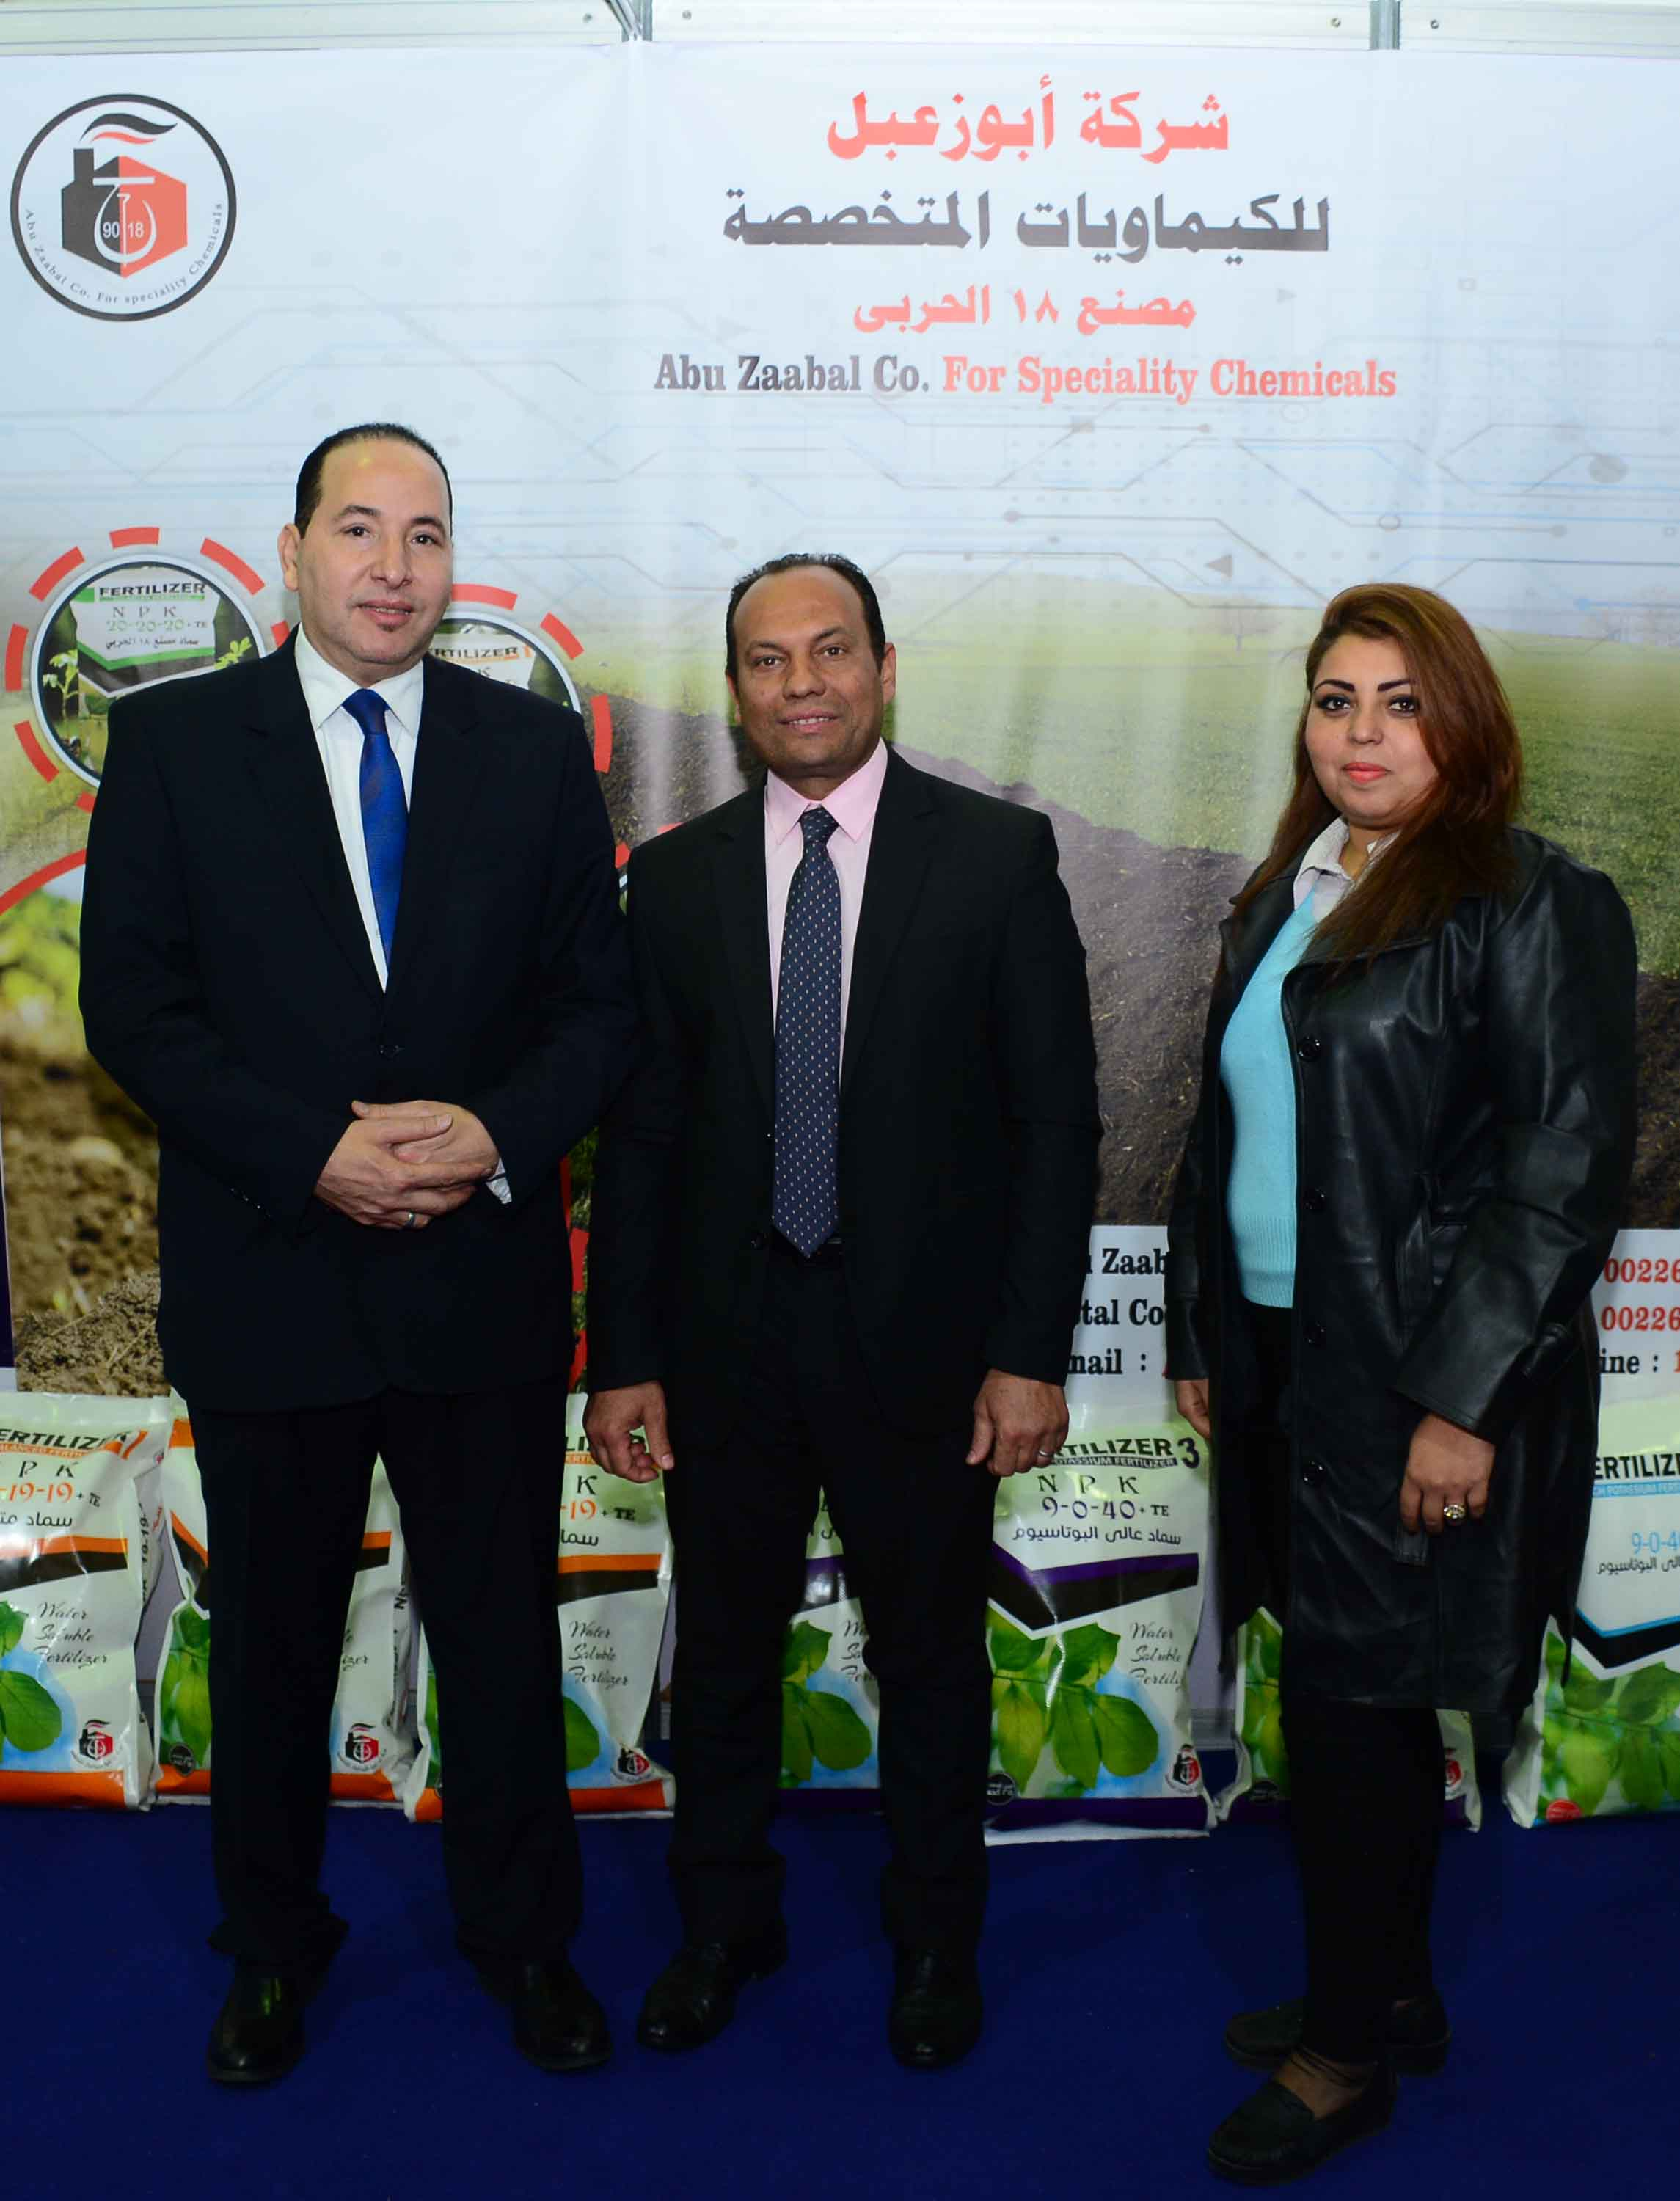 ABU ZAABAL CO. FOR SPECIALITY CHEMICALS